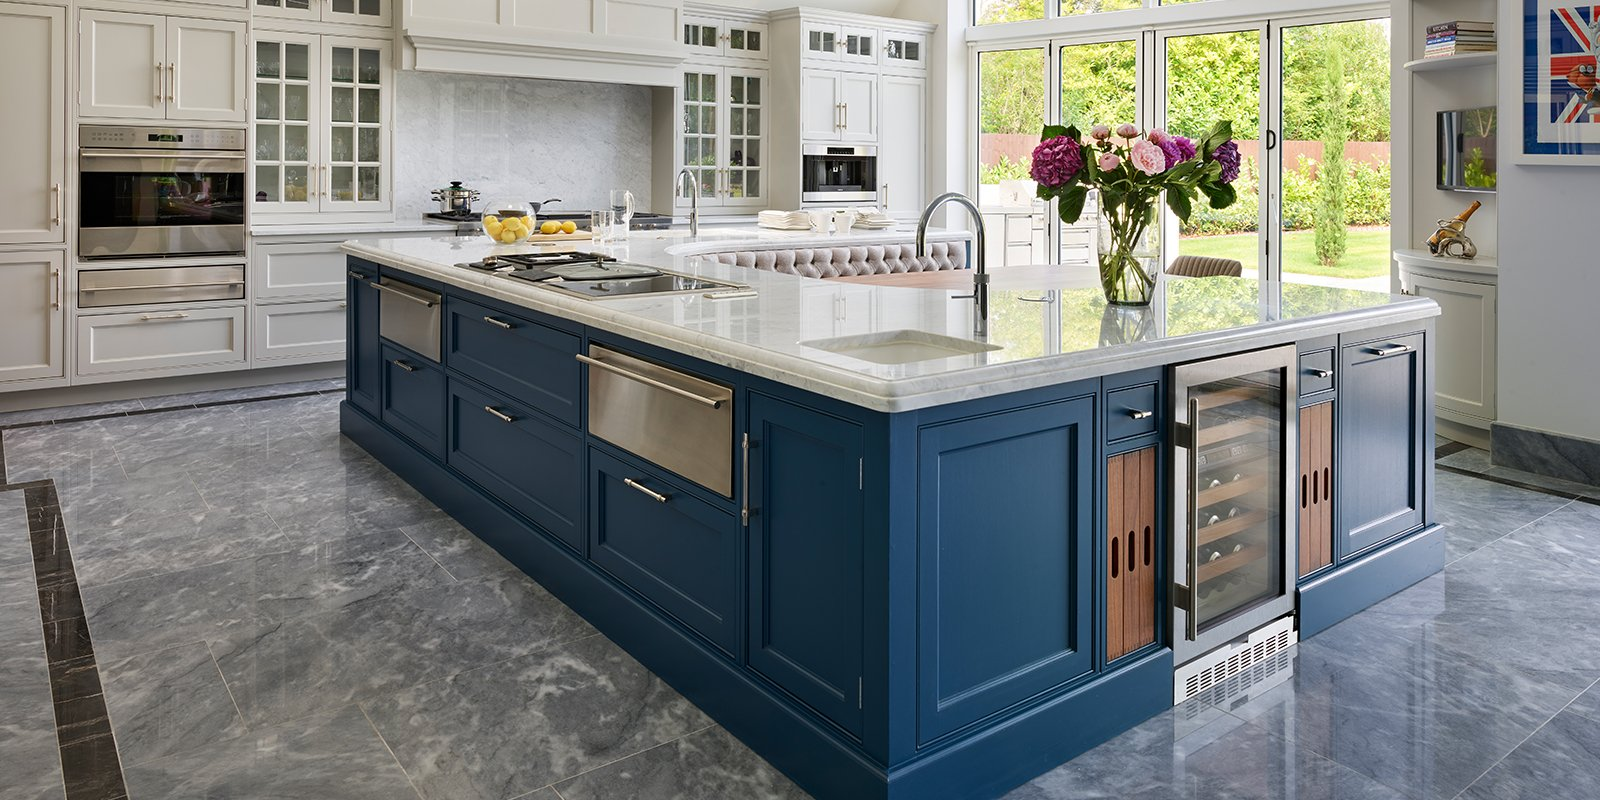 davonport kitchen with large island